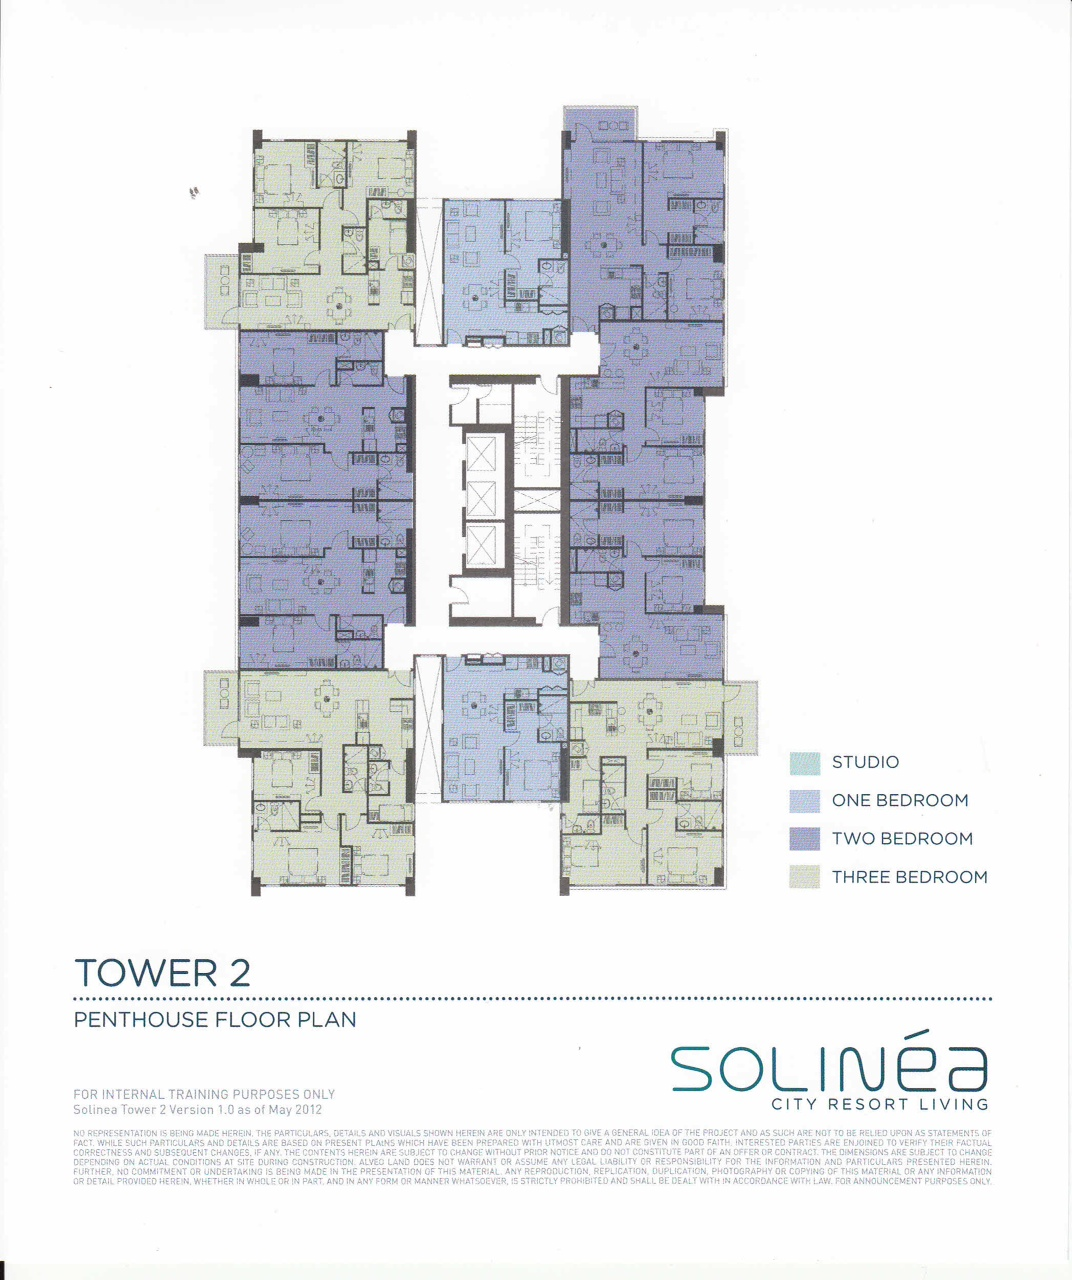 Solinea Tower 2 - Penthouse Floor Plan